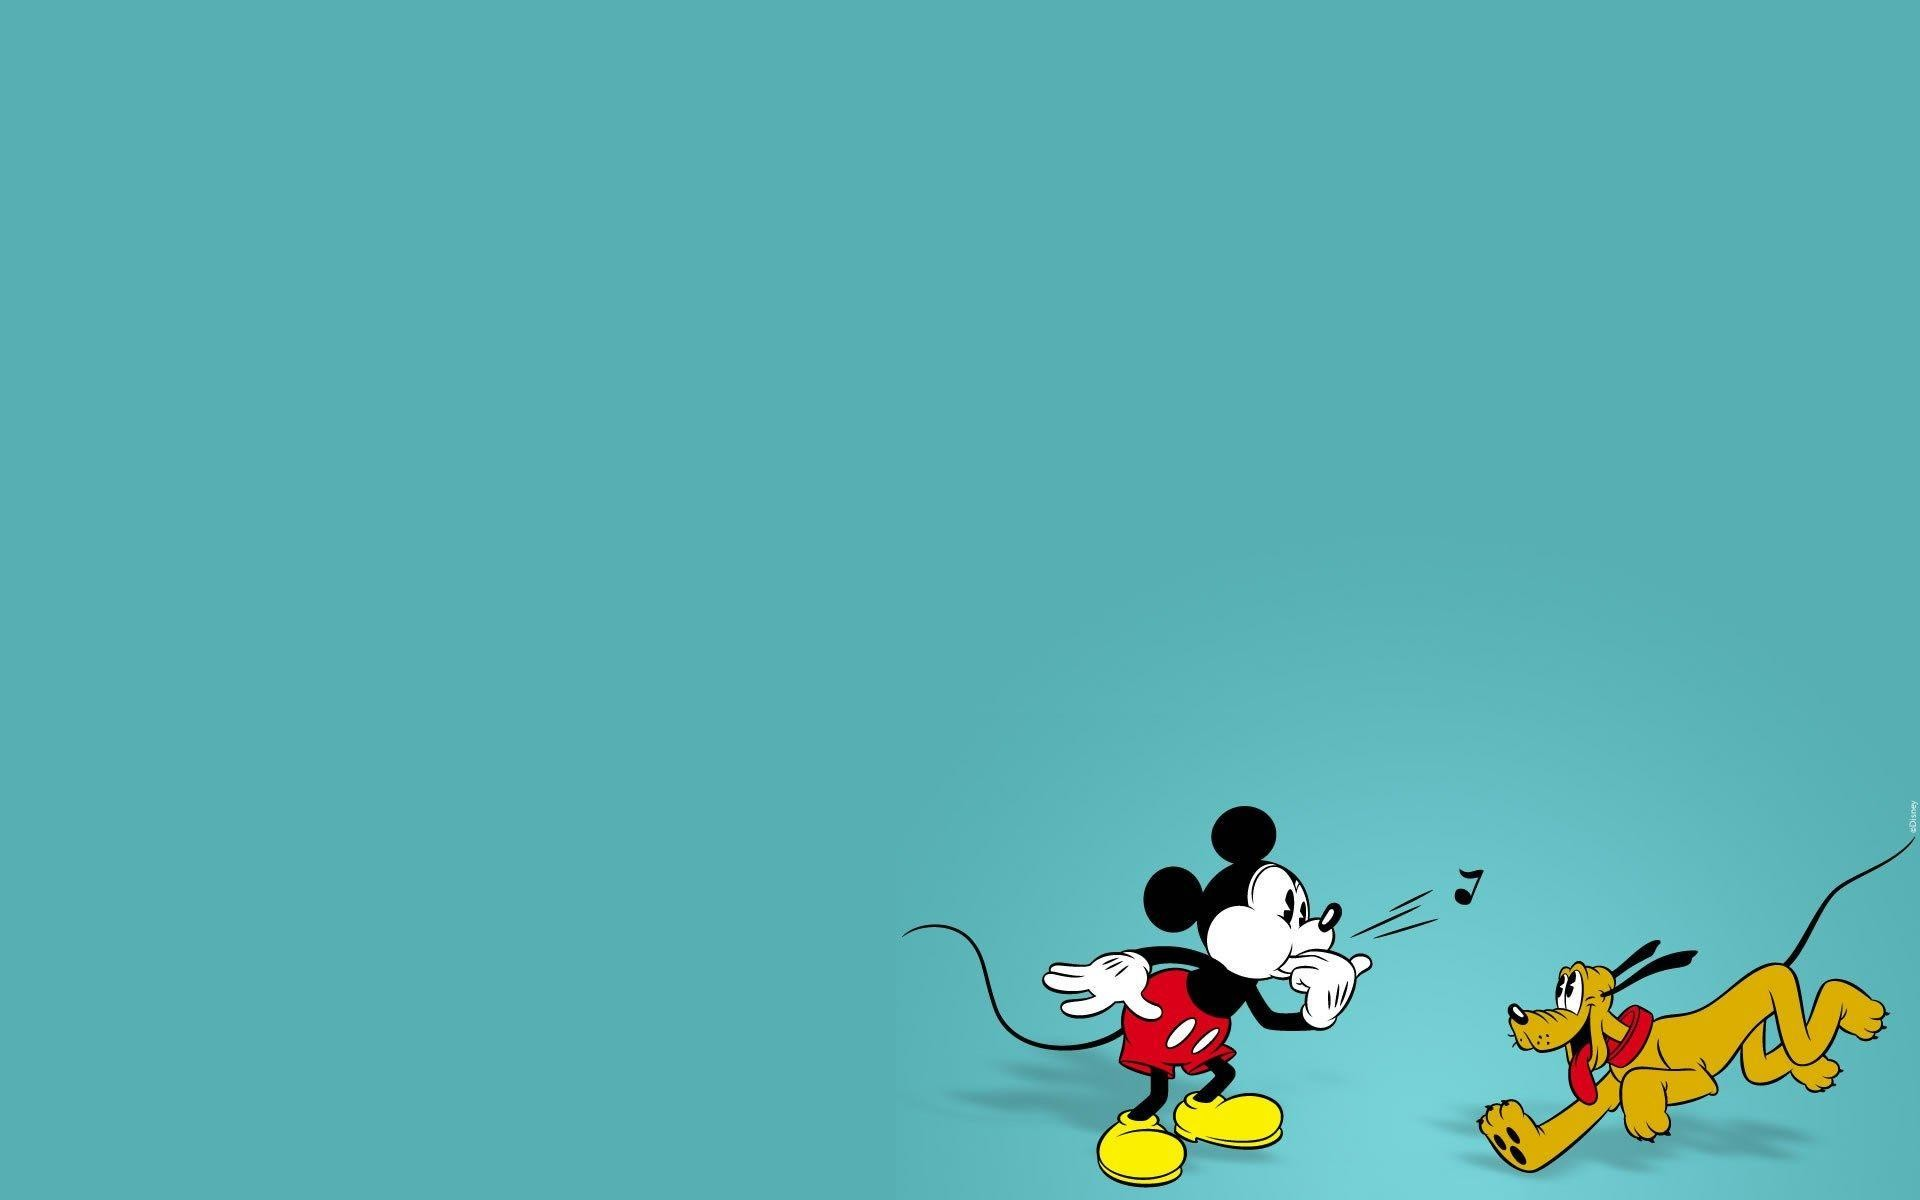 1920x1200 Mickey Mouse Wallpapers HD Pictures | Live HD Wallpaper HQ .